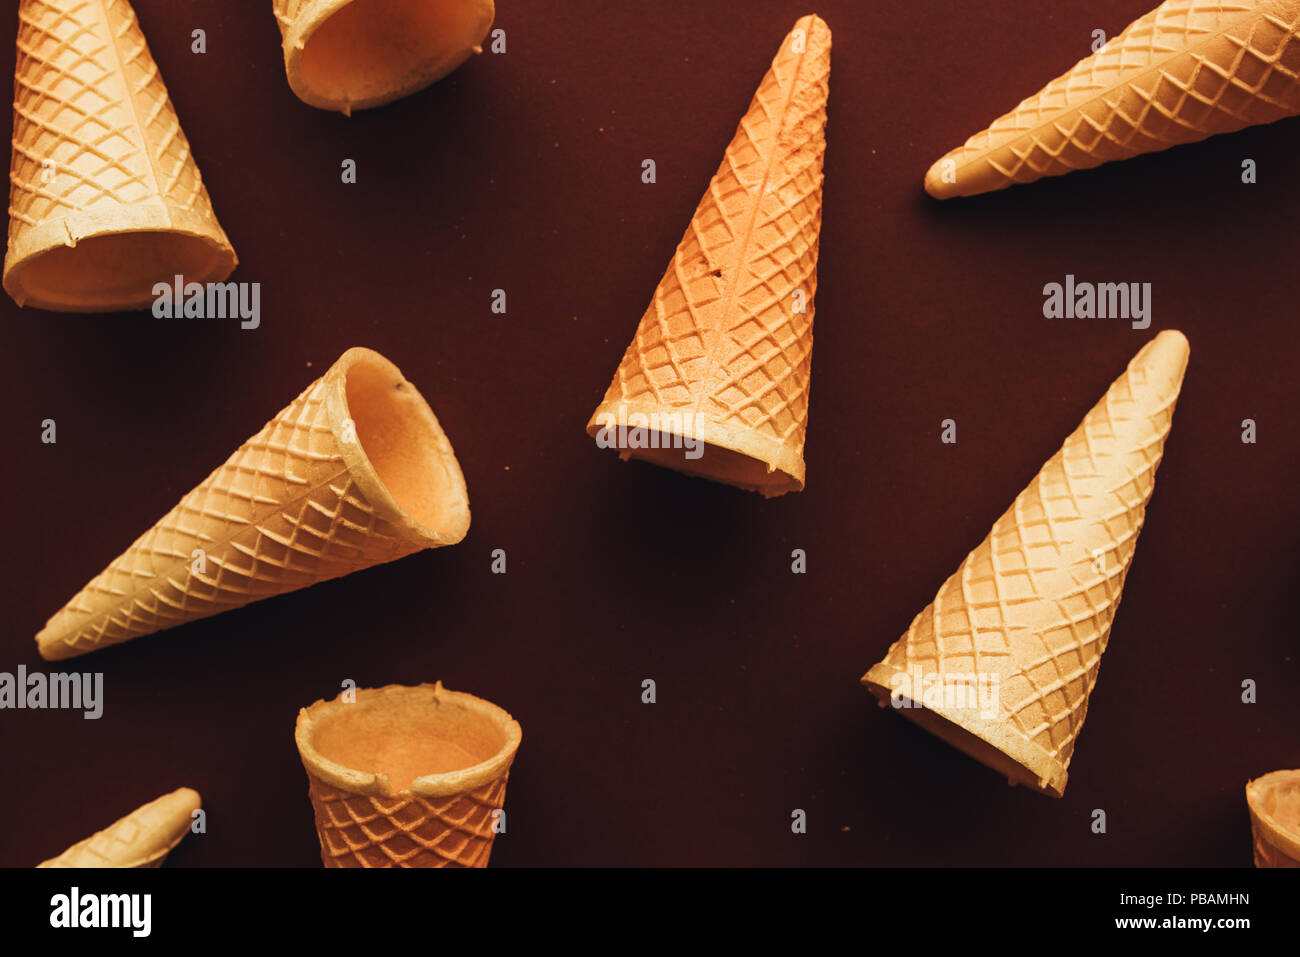 Ice cream cones d'au-dessus, un minimum de mise à plat la composition avec copie espace Photo Stock